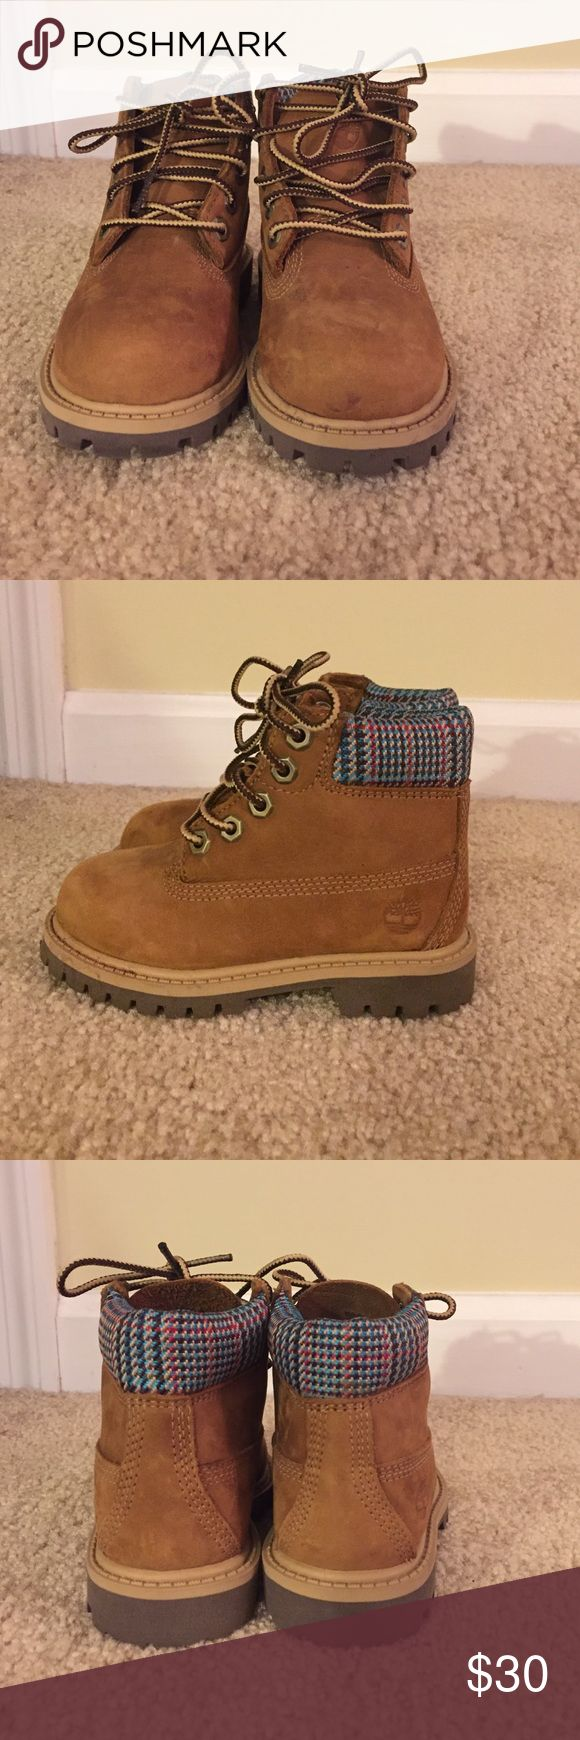 Timberland boots for toddler These Timberland boots were barely even worn. They are in great condition. Timberland Shoes Boots